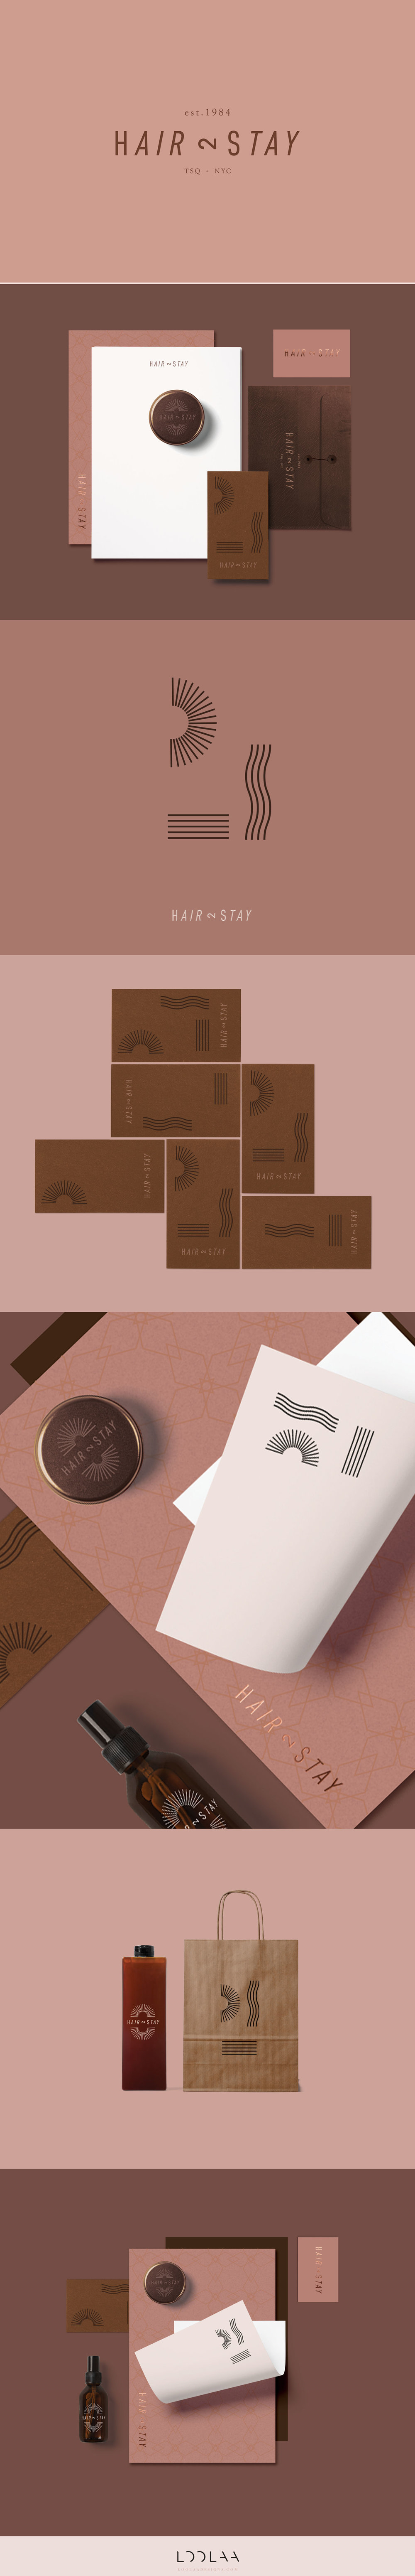 Hair-Salon-Logo-Stationary-Design-LoolaaDesigns.jpg